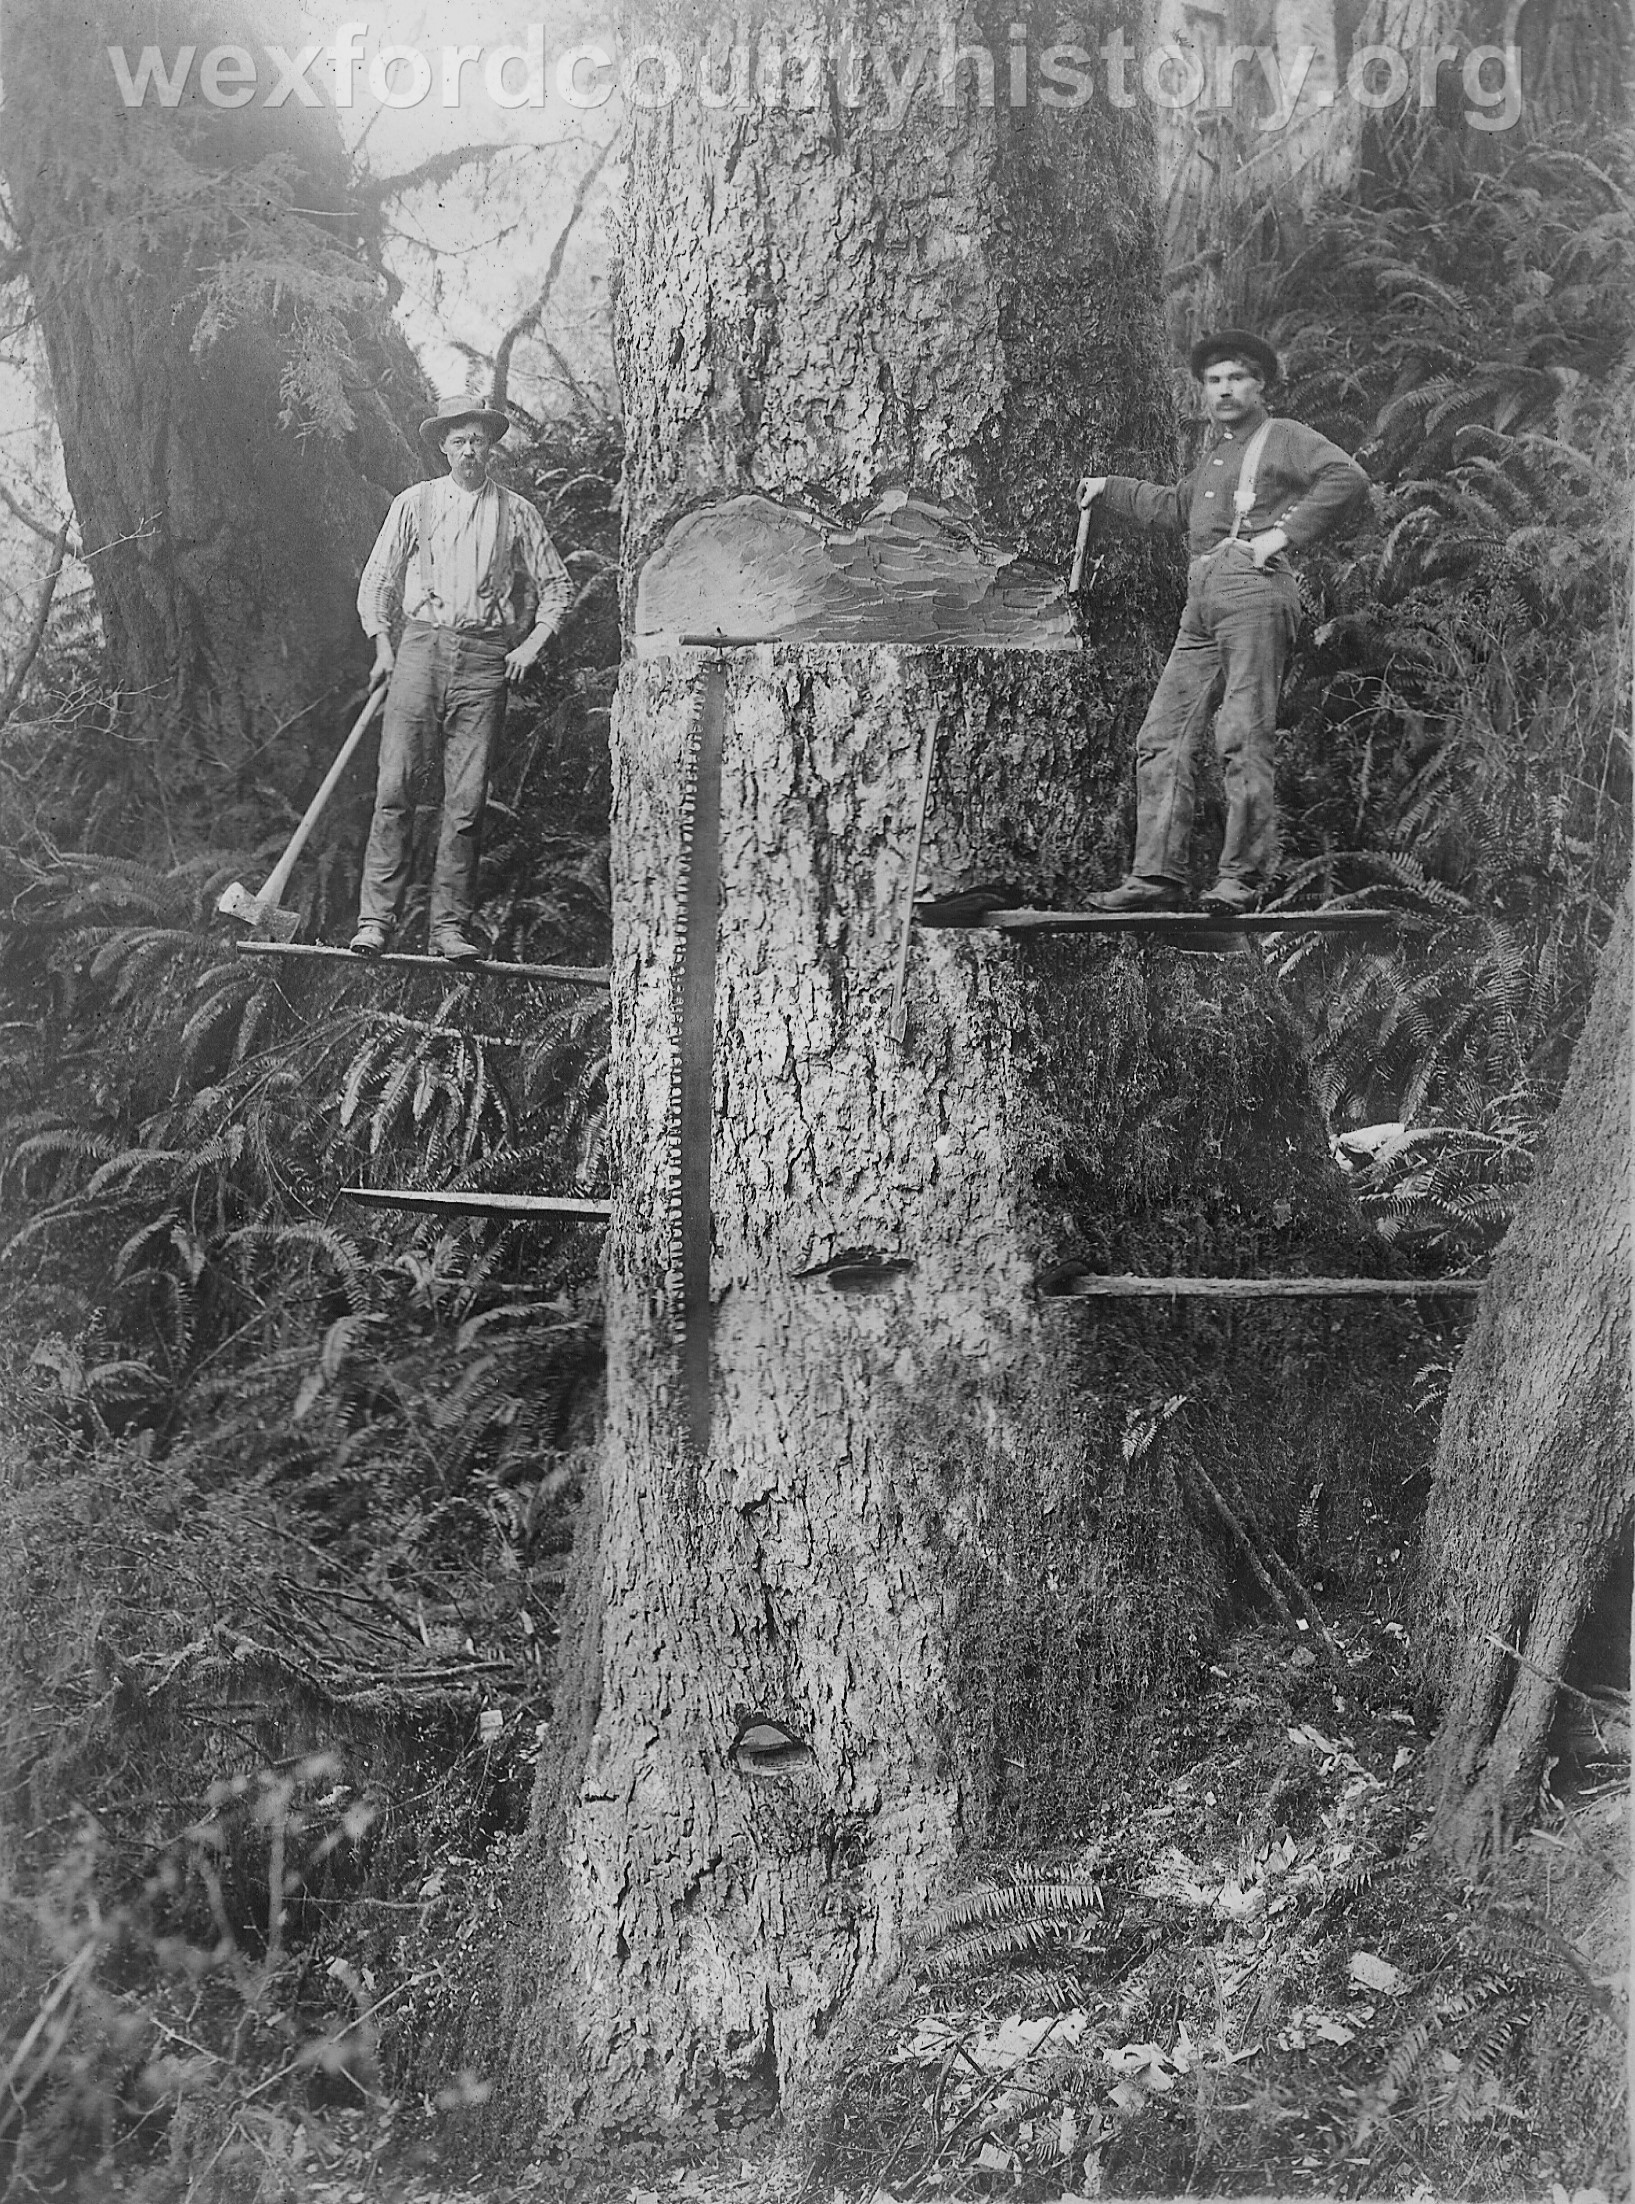 Wexford-County-Lumber-Timber-Harvest-Circa-1890s-10